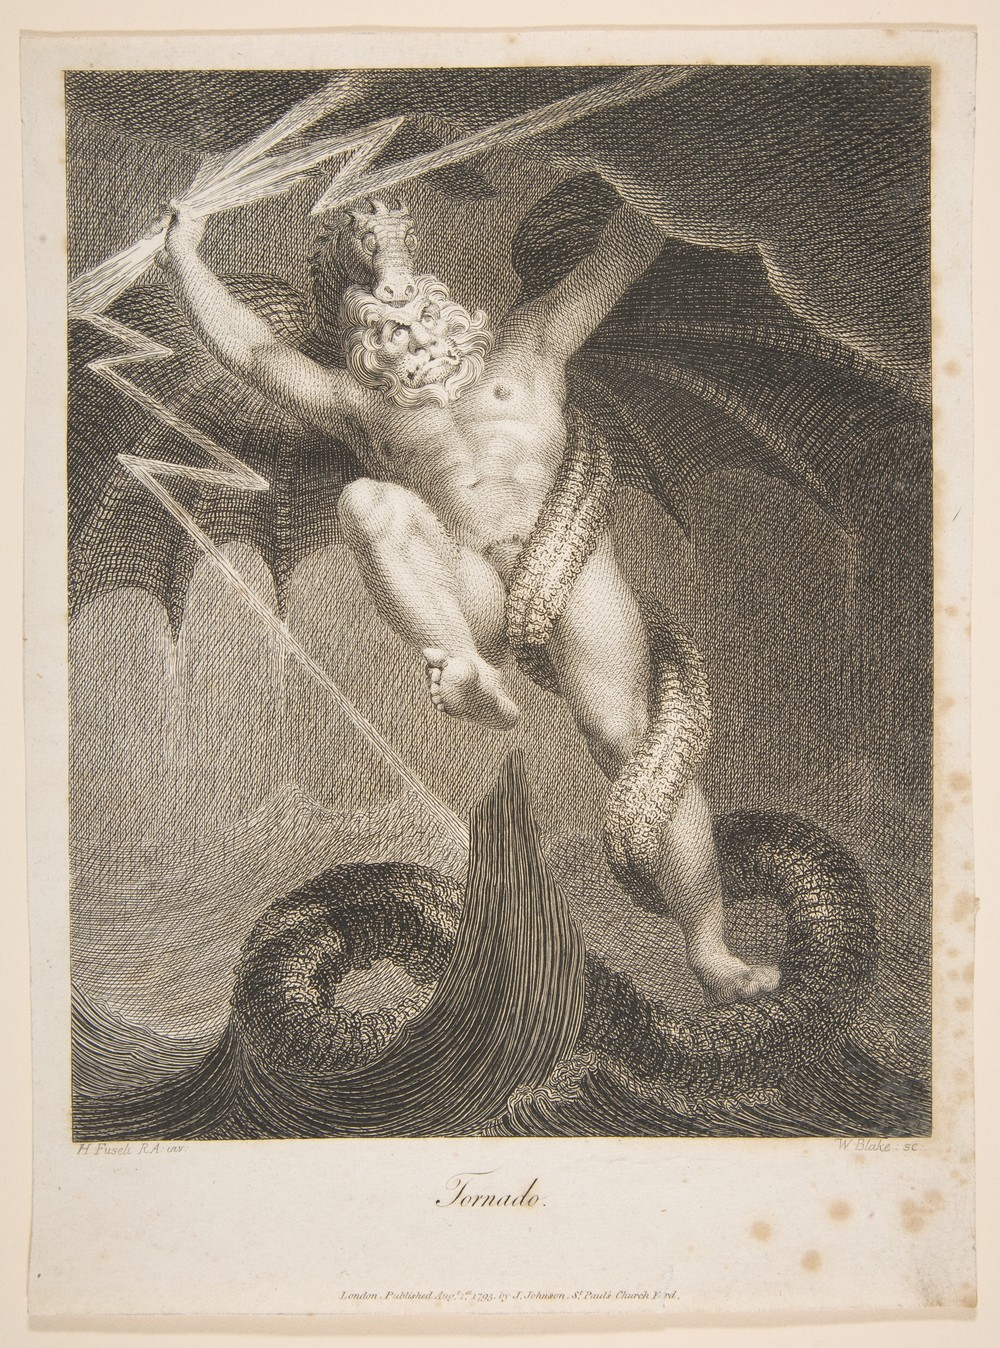 Tornado–Zeus Battling Typhon,   by   William Blake   (1757–1827) after   Henry Fuseli   (1741–1825),  monochrome shaded line drawing   from the third edition of    Erasmus Darwin 's  (1731  –1802  )   The Botanic Garden  (1795).    source: The Elisha Whittelsey Collection, The Elisha Whittelsey Fund, 1966 via  The Metropolitan Museum of Art  (New York, United States).